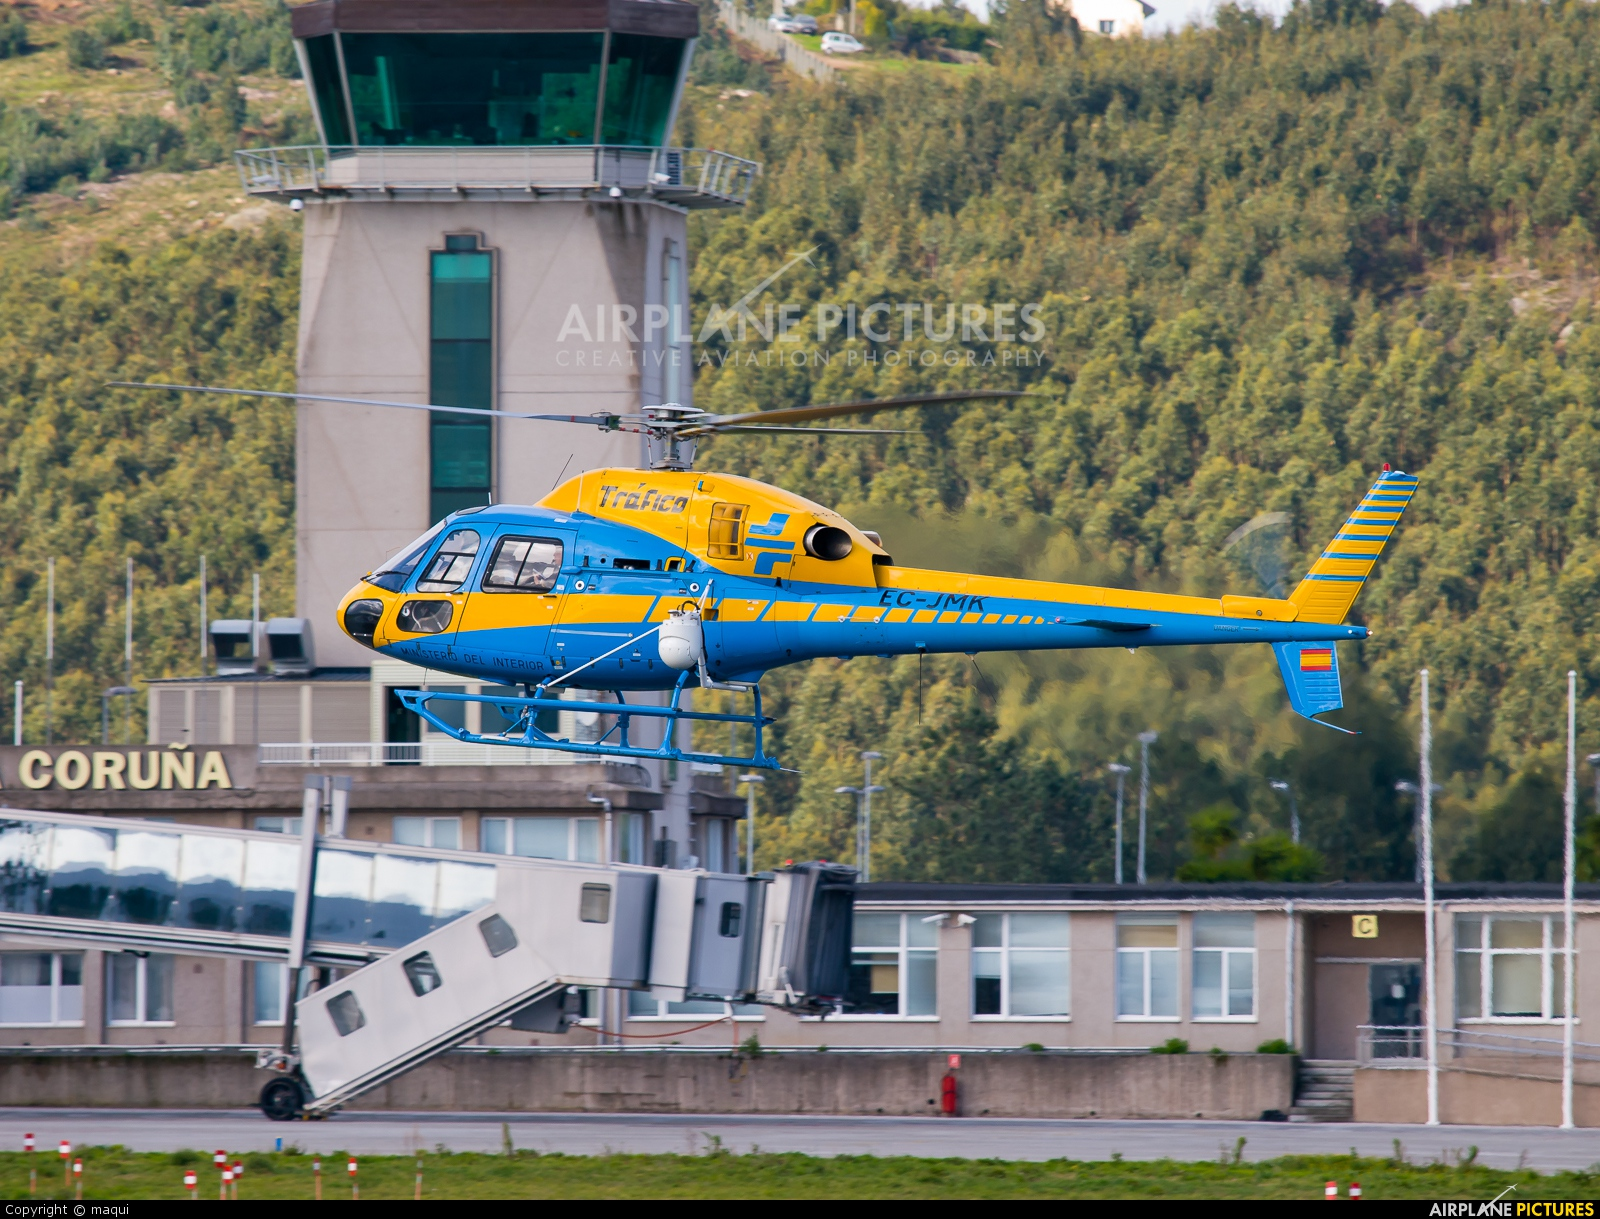 Spain - Government EC-JMK aircraft at La Coruña